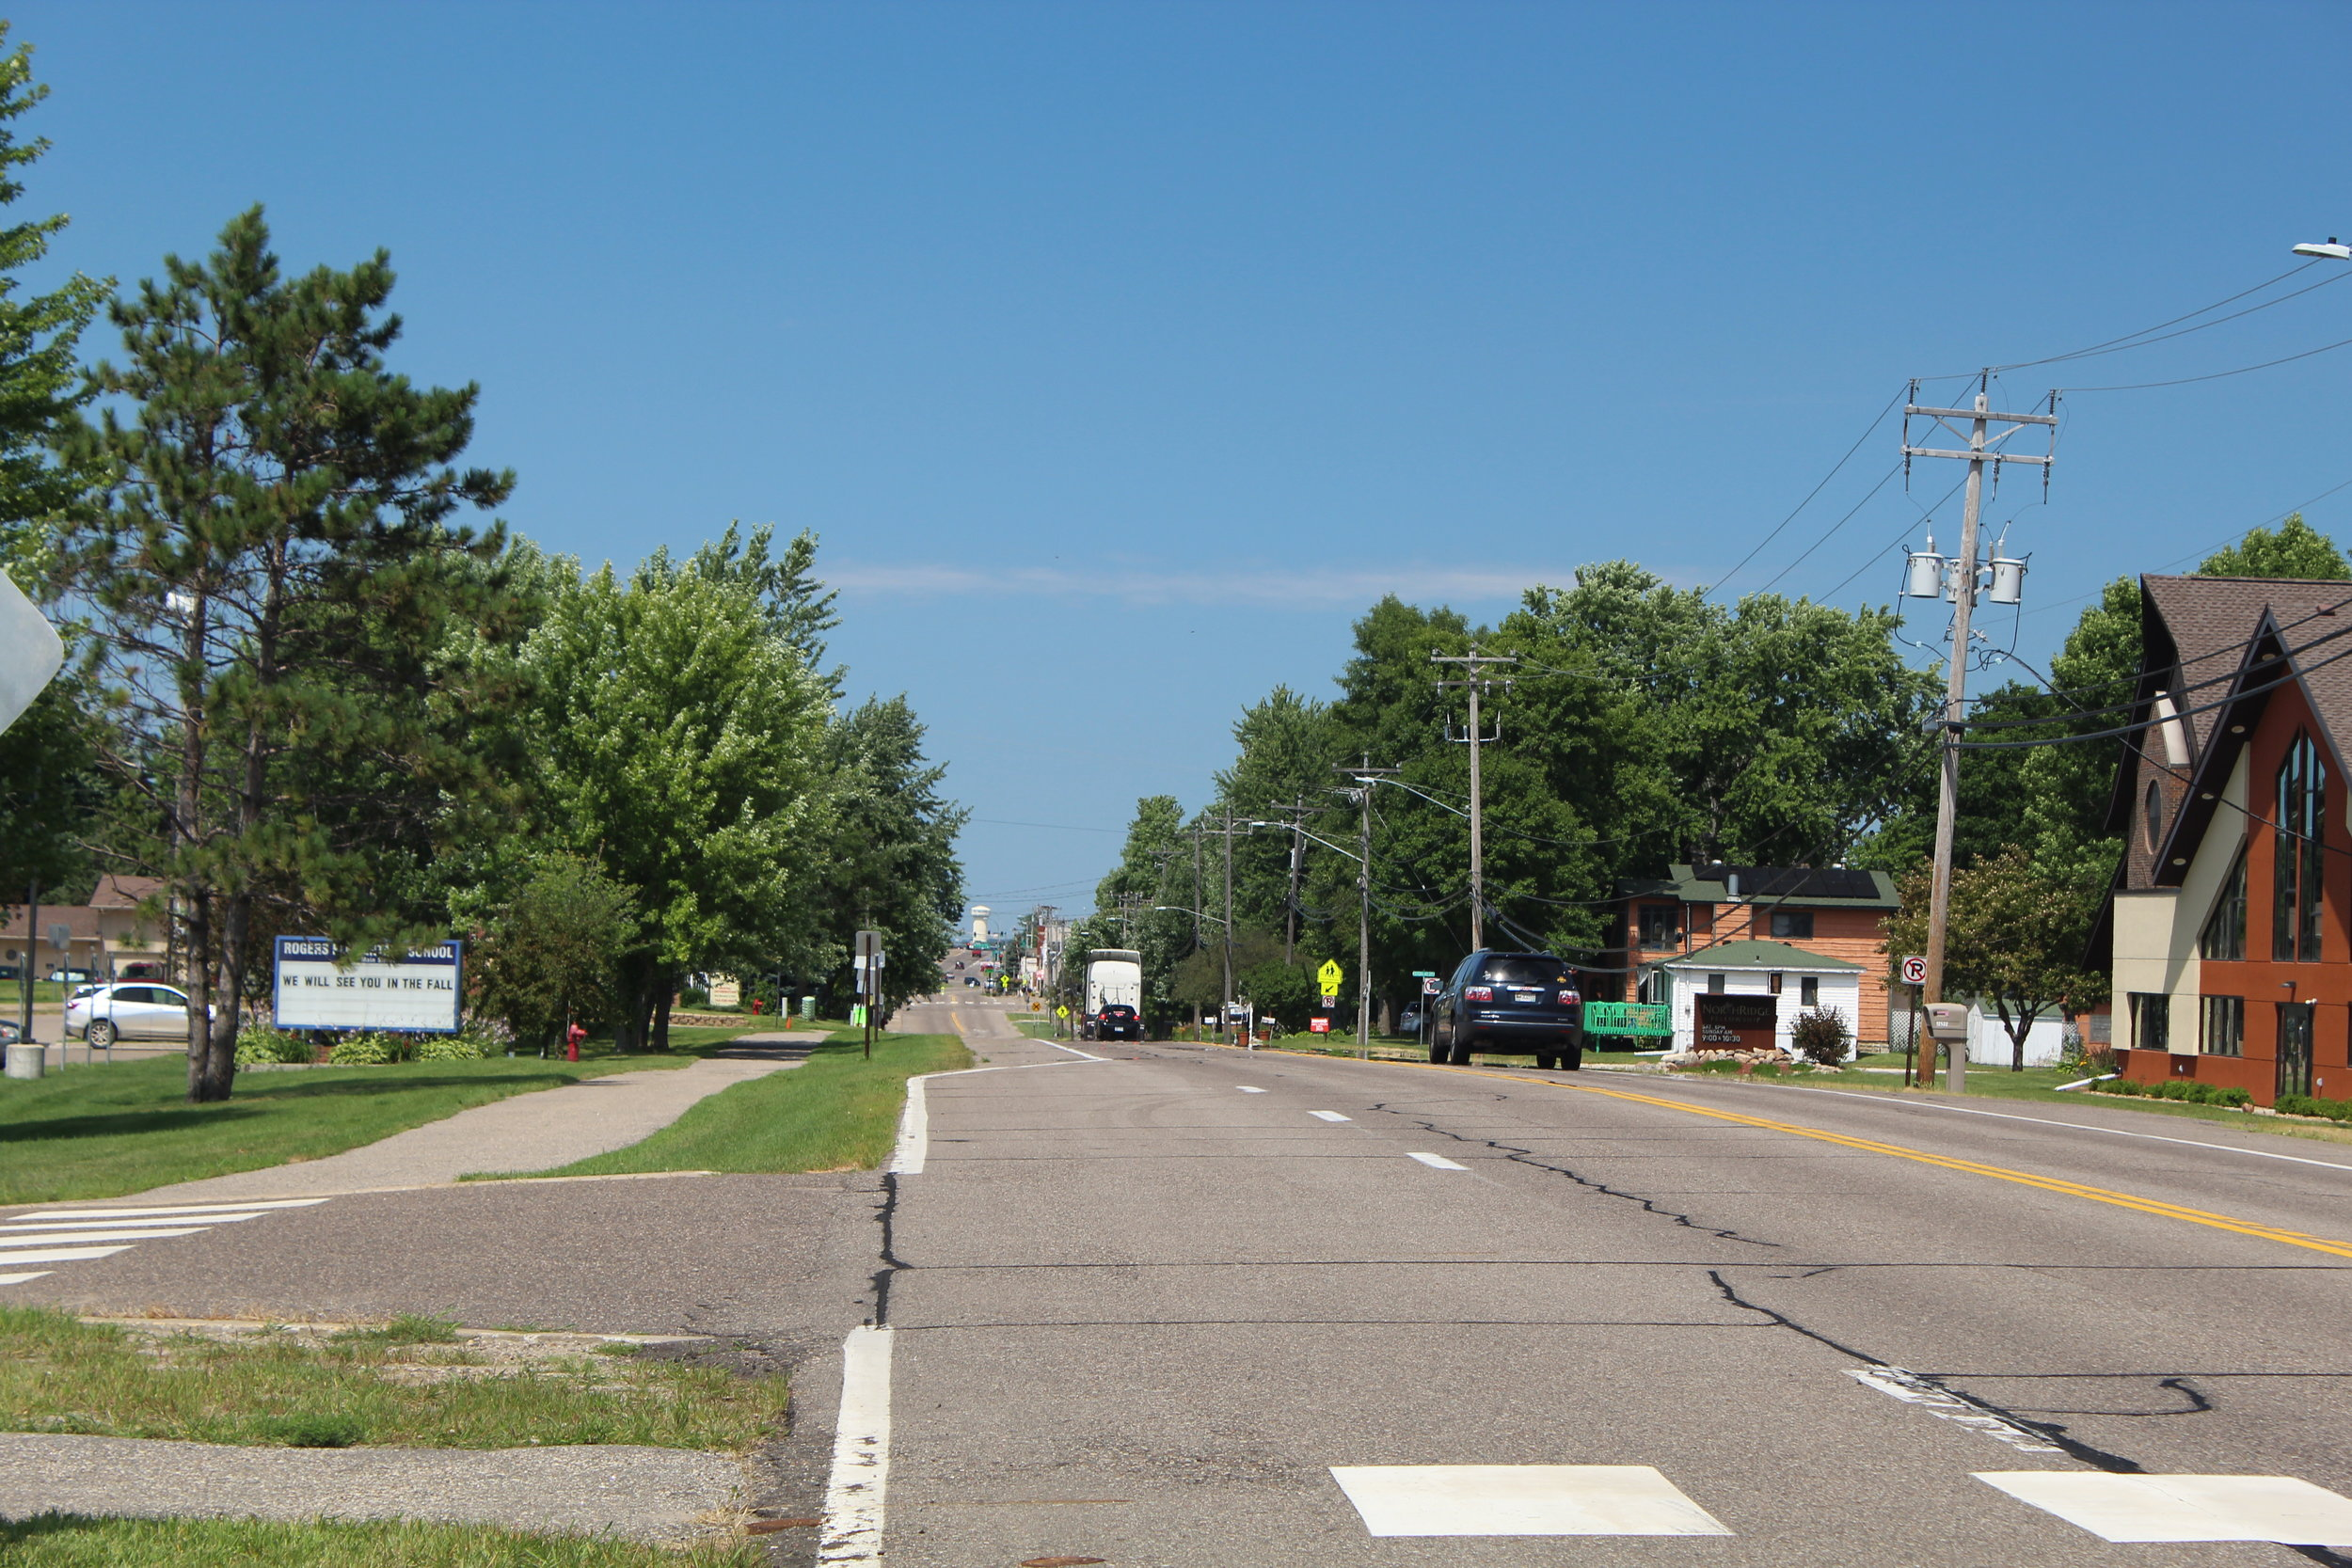 Picture of Main Street in Rogers, Minnesota.